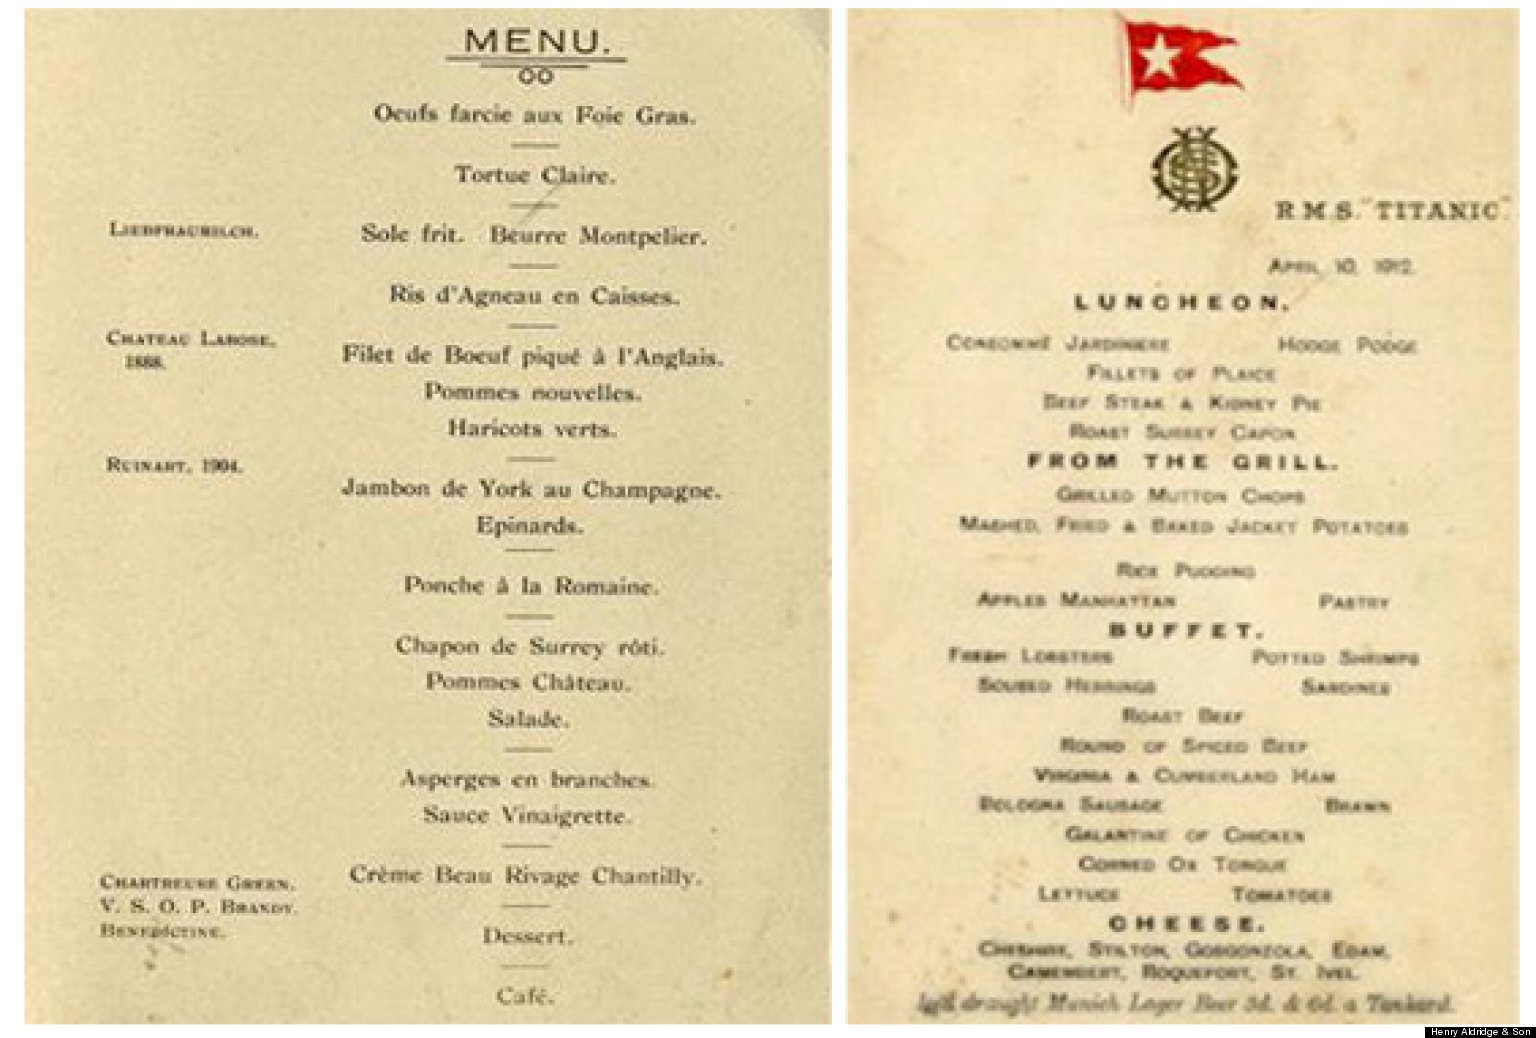 Rare Titanic Menus Auctioned For World Record Breaking